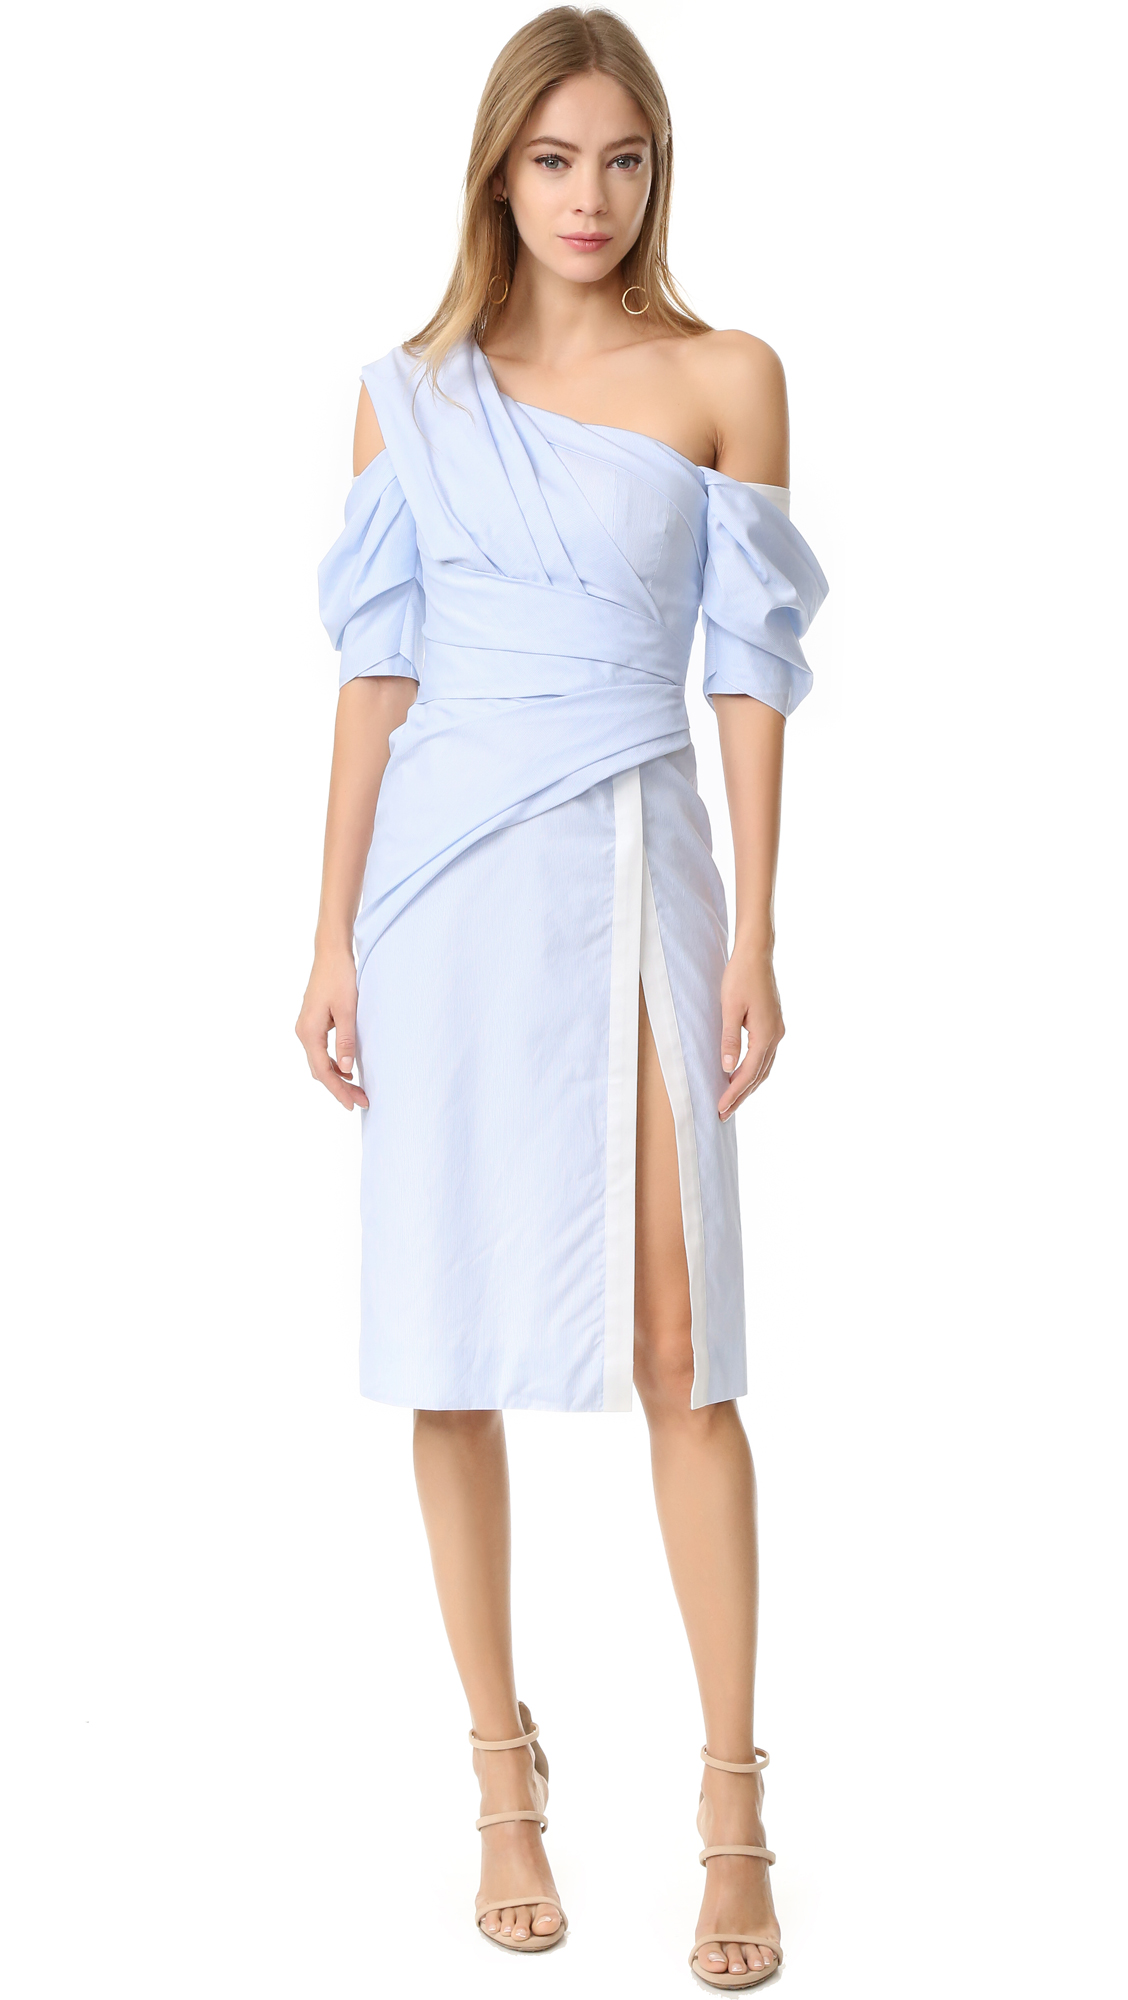 J. Mendel One Shoulder Wrap Dress - Blue/Ivoire